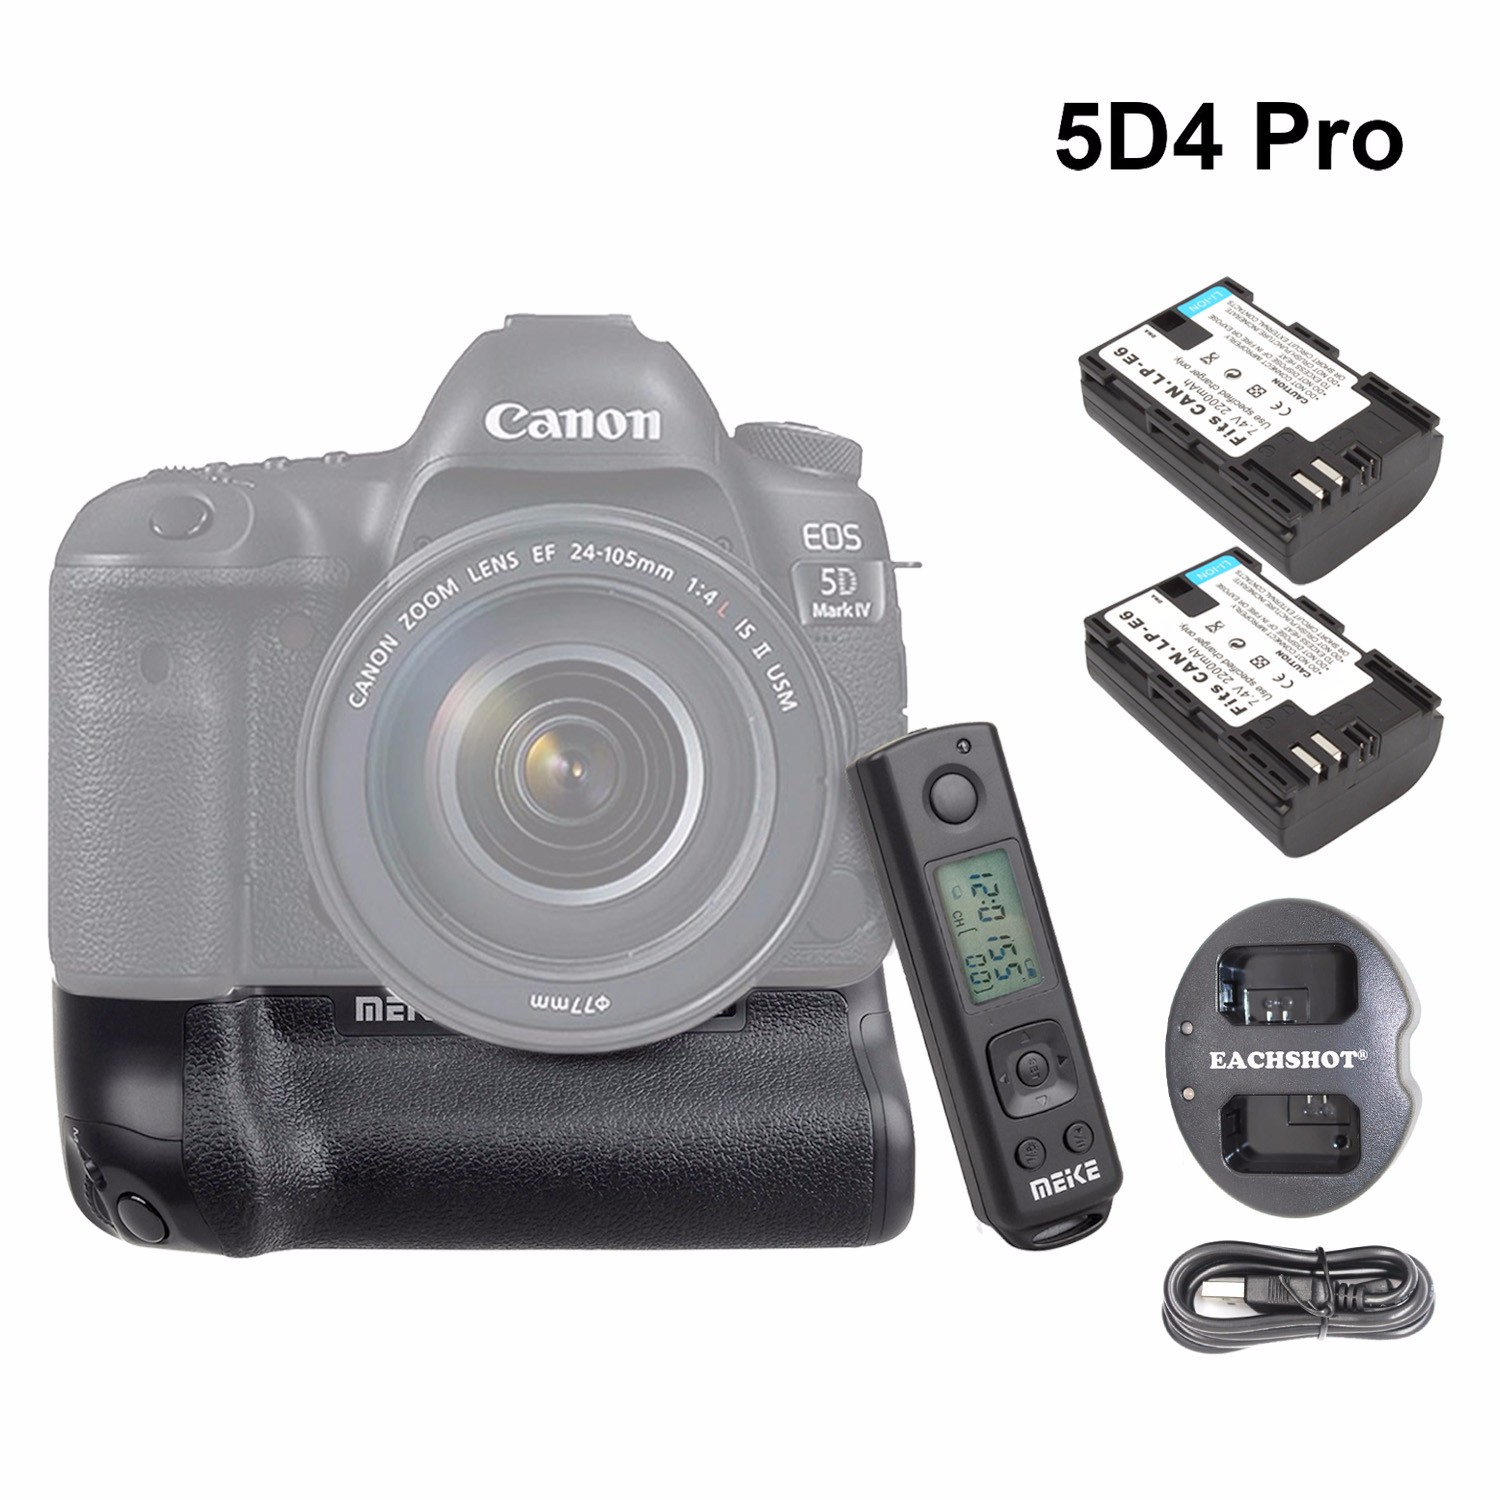 Meike MK-5D4 PRO Battery Grip With 2.4G Wireless Remote for Canon 5D Mark IV Camera as Canon BG-E20 w/ LP-E6 Battery & Charger